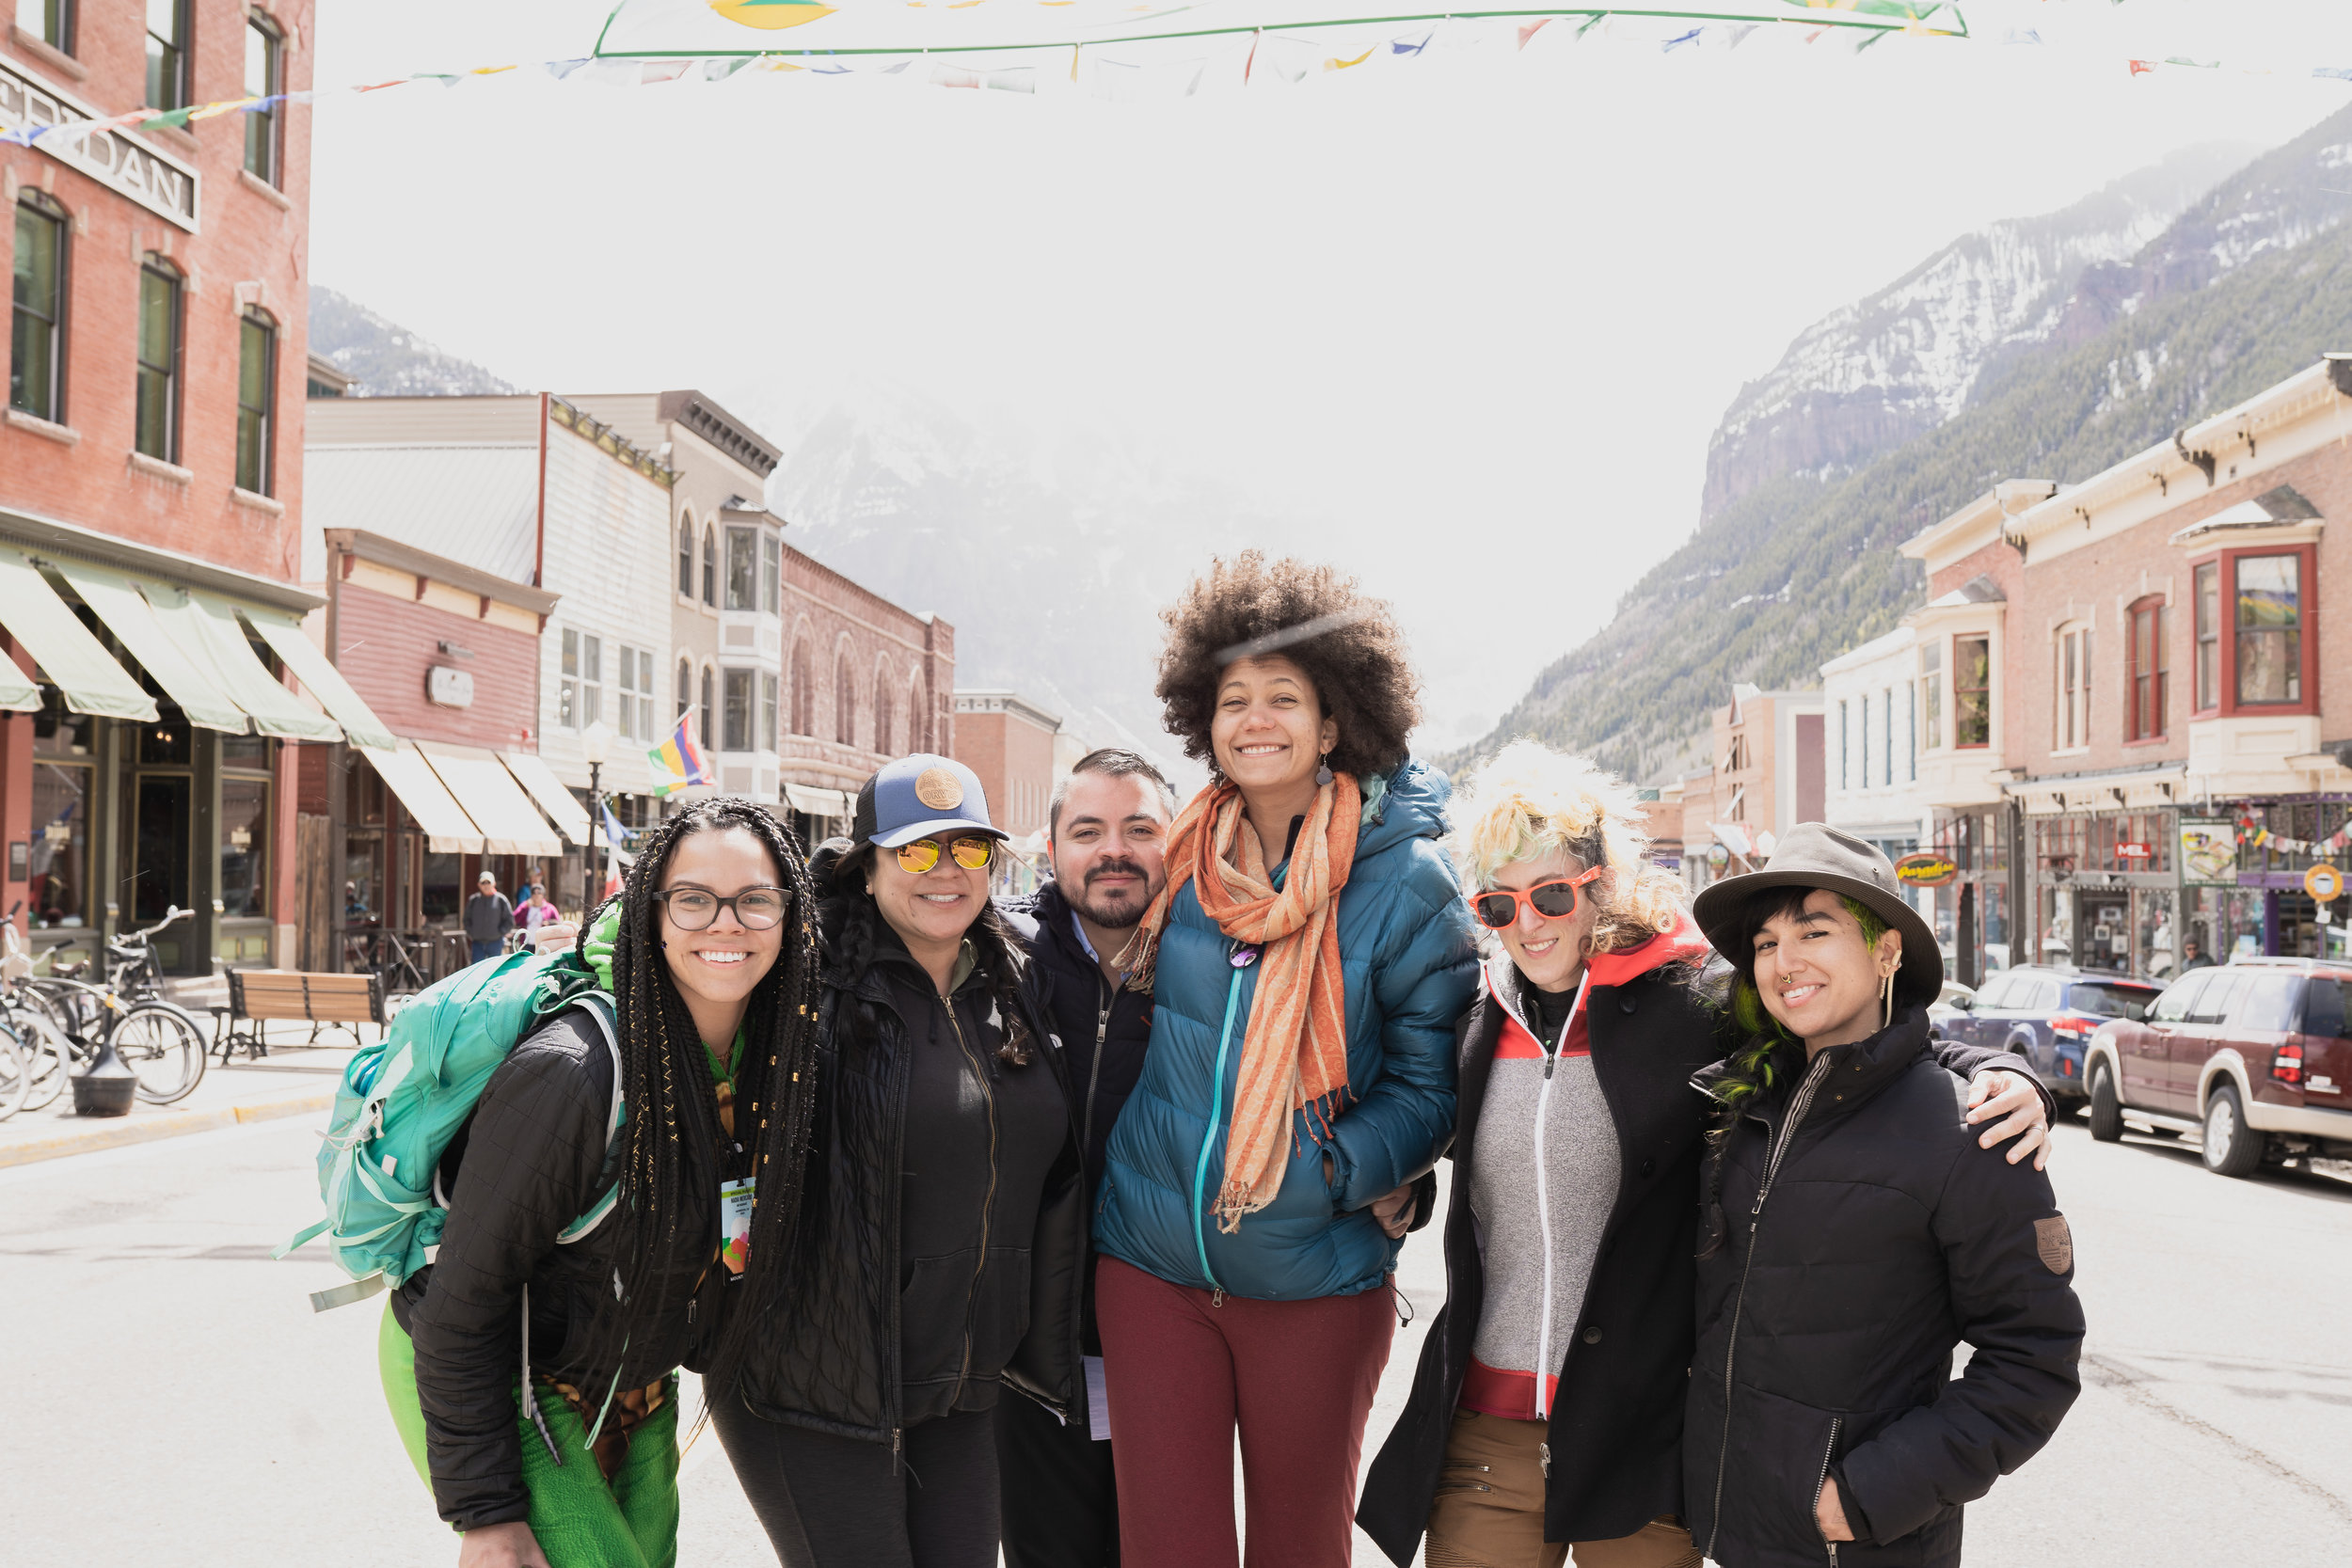 Mendiola (3rd from left) is pictured with friends at Mountainfilm in Telluride, CO. Photo courtesy of  Adam Snyder .